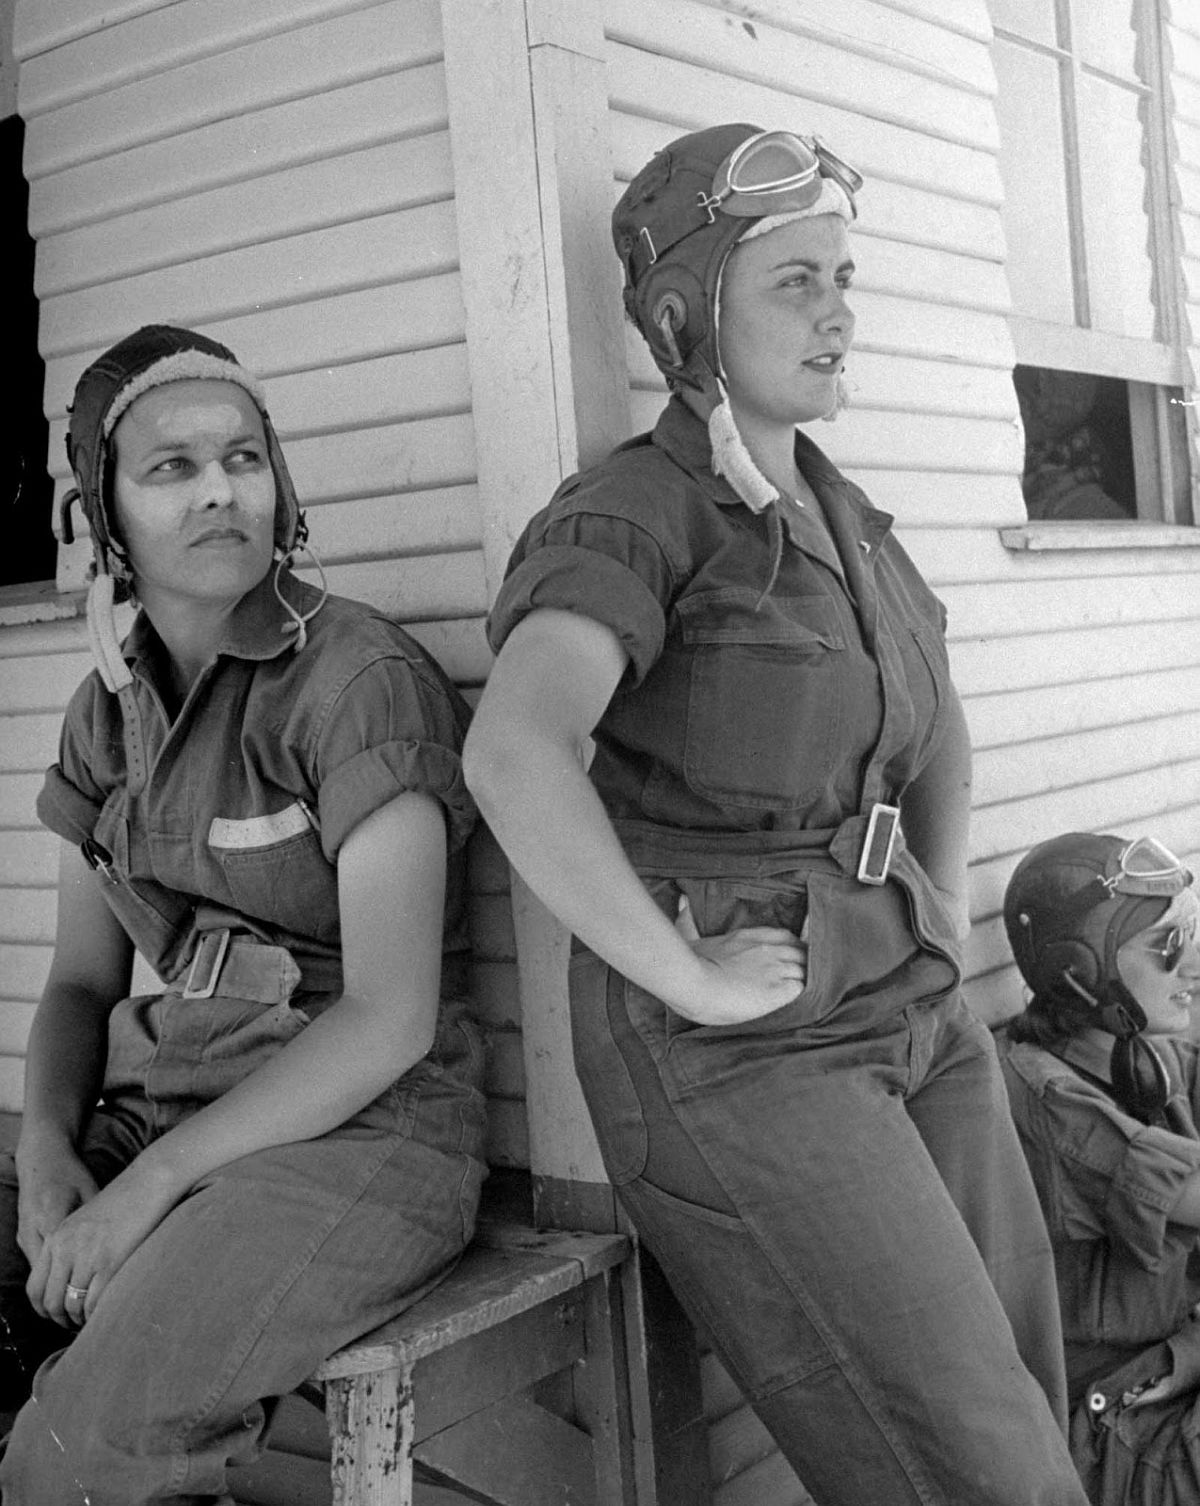 """Sunburned nose and forehead are daubed with protective cream by Rebecca Edwards of Yazoo City, Miss., 22-year-old widow whose husband was killed during duty with the Army Air Forces. Standing next to Rebecca and leaning against the corner of the primary hangar from which both of the girls fly is Lorena Daly of Bakersfield, Calif. They each have on the G.I. coveralls, called """"zoot suits"""" in Avenger Field lingo, that are regulation uniform for all working hours. Though suits are not very glamorous, the girls like their comfort and freedom."""